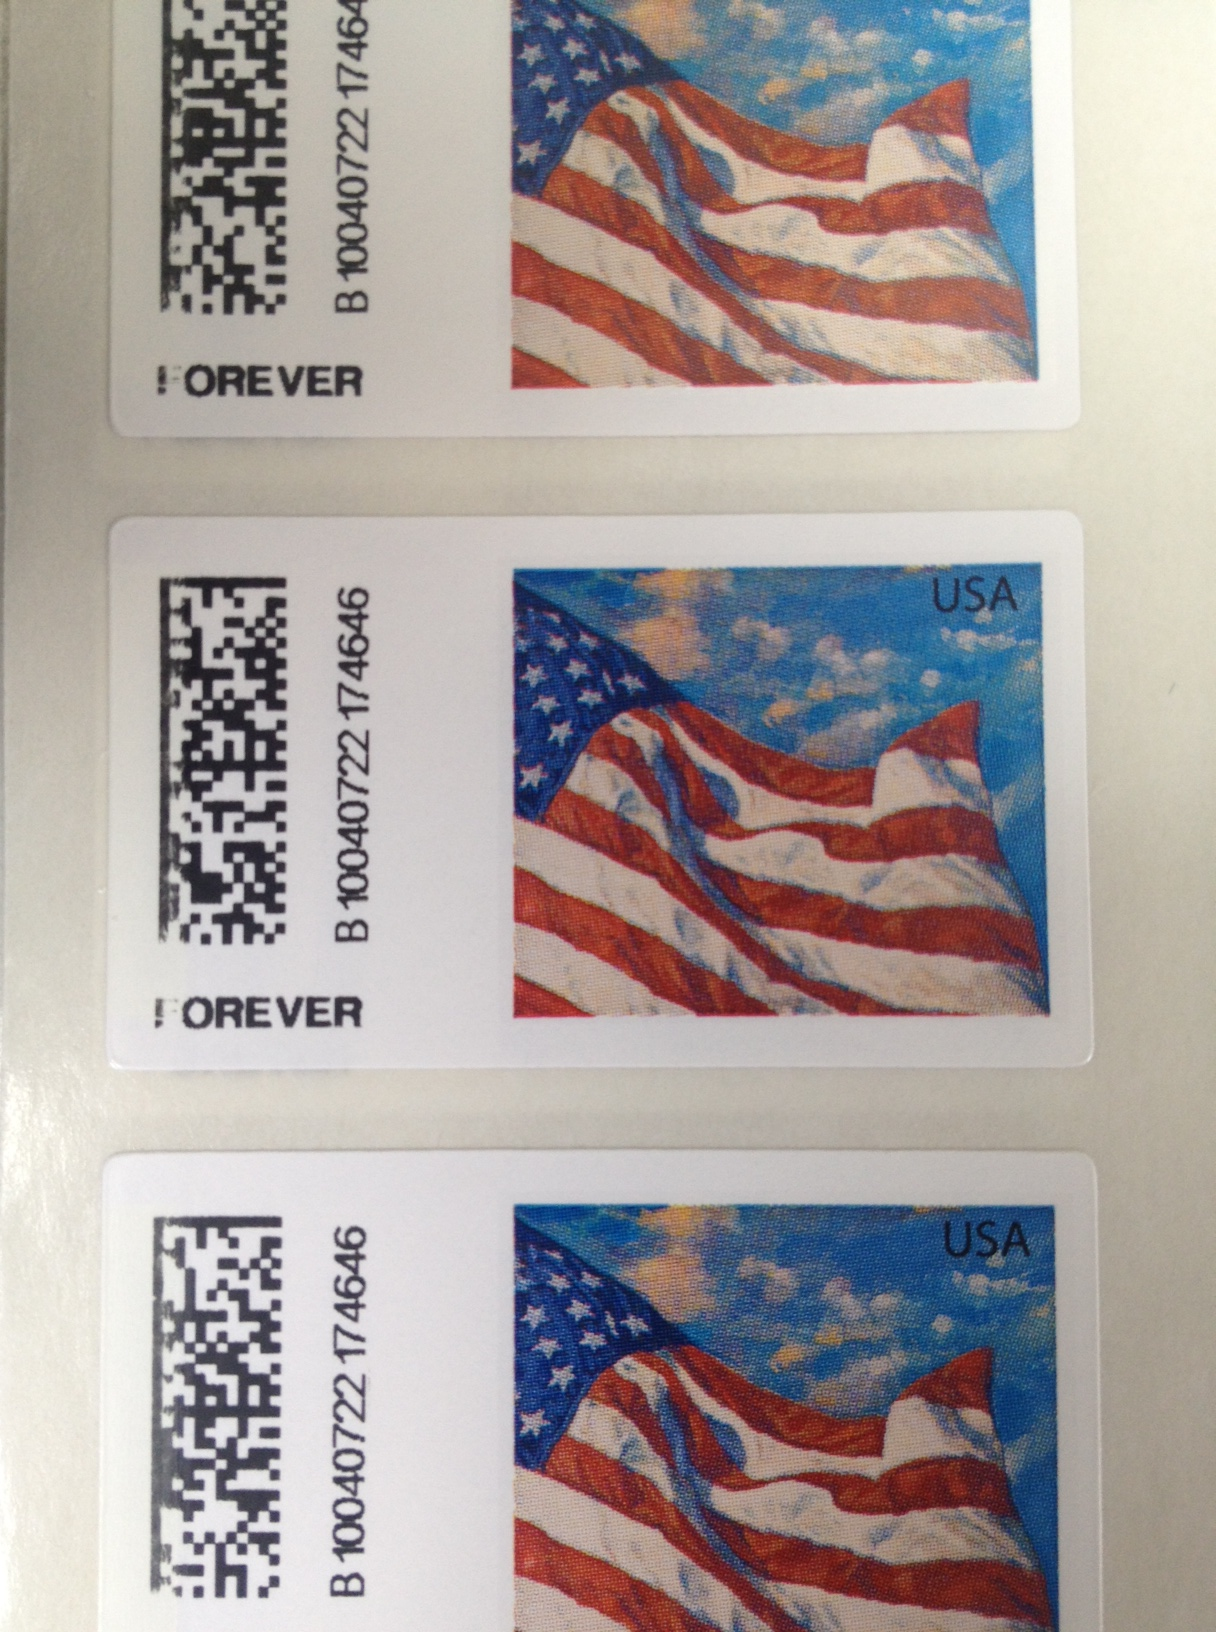 New Usps Forever Stamps Contain A Qr Code Privacy Living